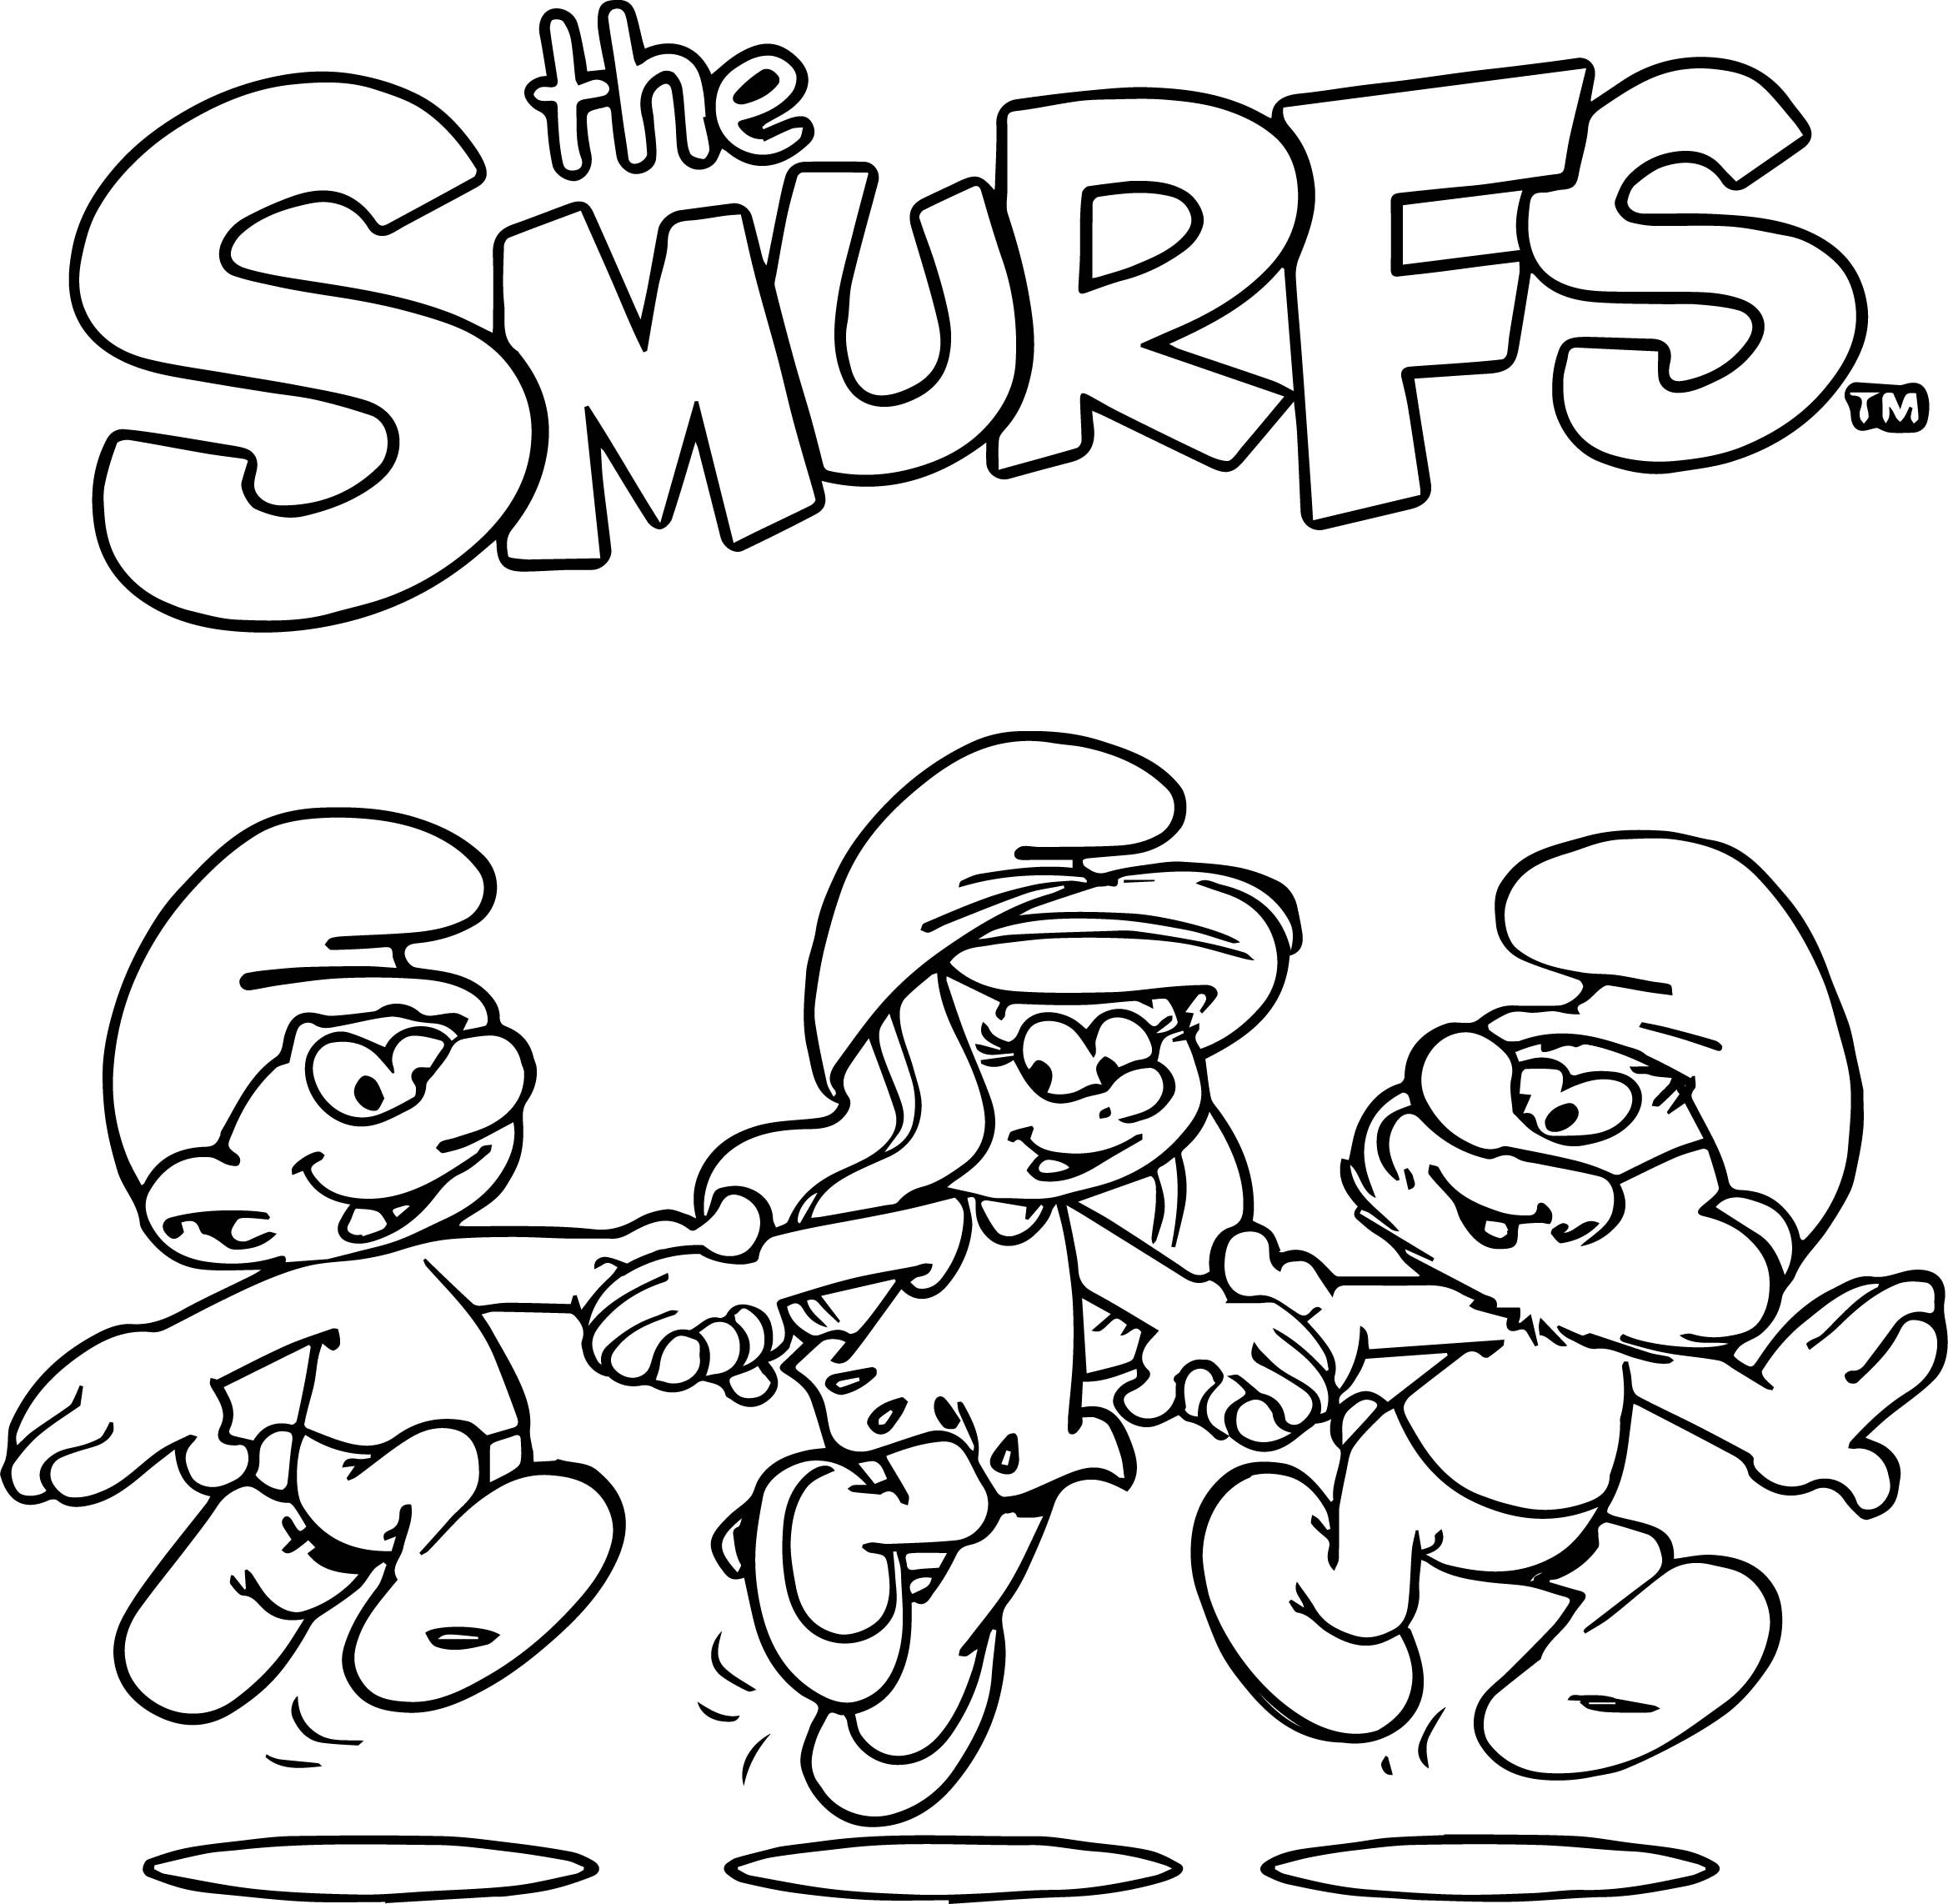 Free Smurf Coloring Pages at GetDrawings.com | Free for ...